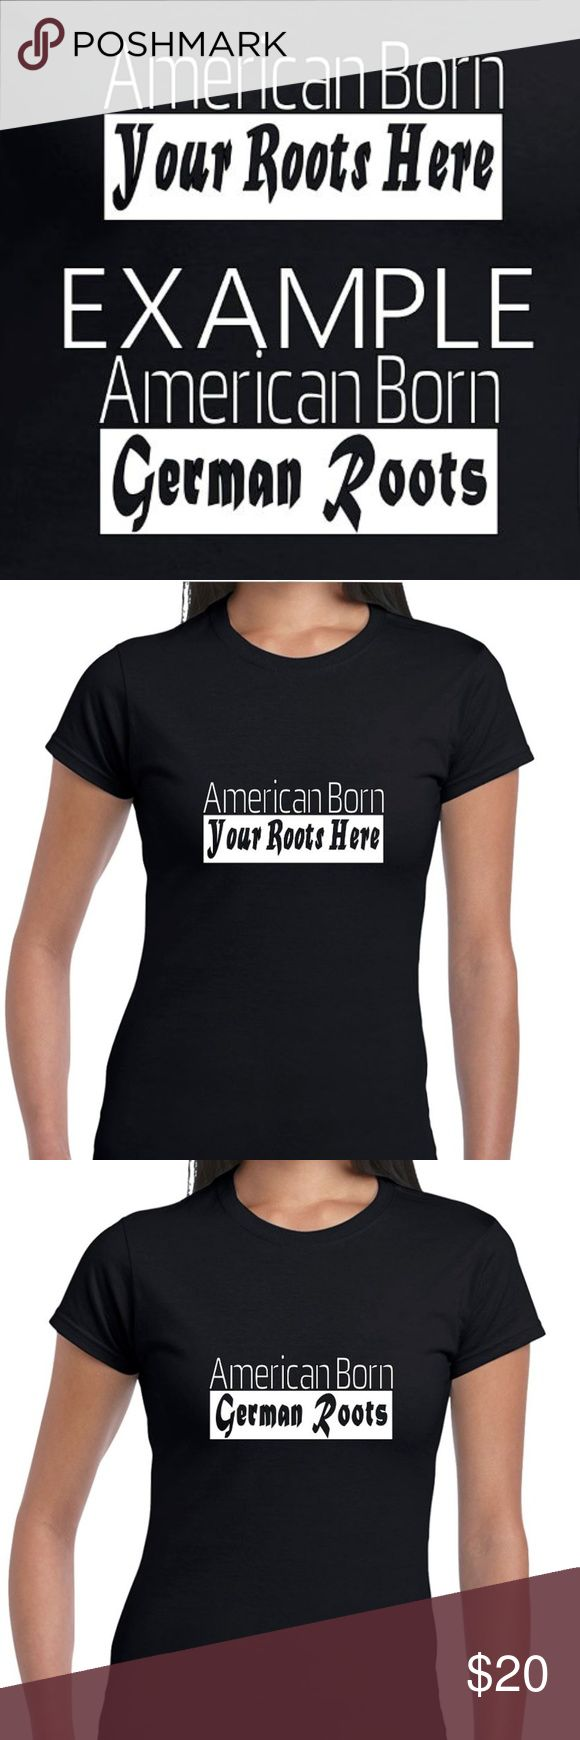 """Reflective Or Glow In The Dark Custom Tee """"American Born - Your Roots"""" Custom Women's Tee.  Customize your own """"Roots"""" ancestry tee for free! Tag us on this post when you purchase and tell us the roots you want on the t-shirt! Born elsewhere? Let us know!  - The base tee is Cotton Plant-Based, and 100% Made In The USA (No sweatshops, slave labor, etc!) - Default order is """"Glow In The Dark"""". Notify us if you want reflective! - From dusk to early dawn VISIBL designs are great for biking…"""